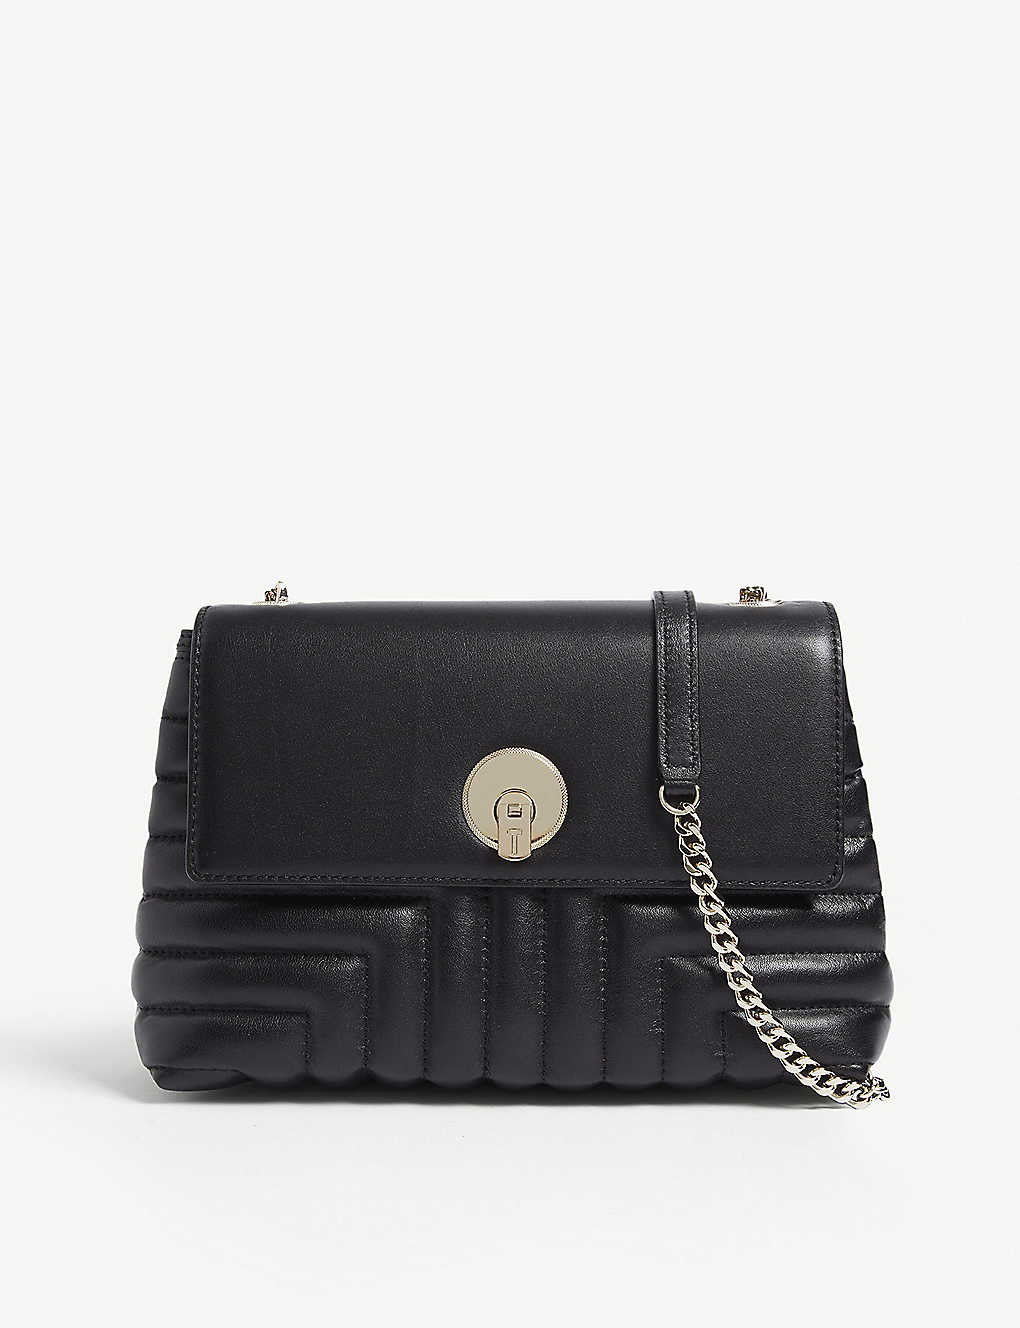 e29edcceee7 TED BAKER - Ssusiee leather cross-body bag | Selfridges.com